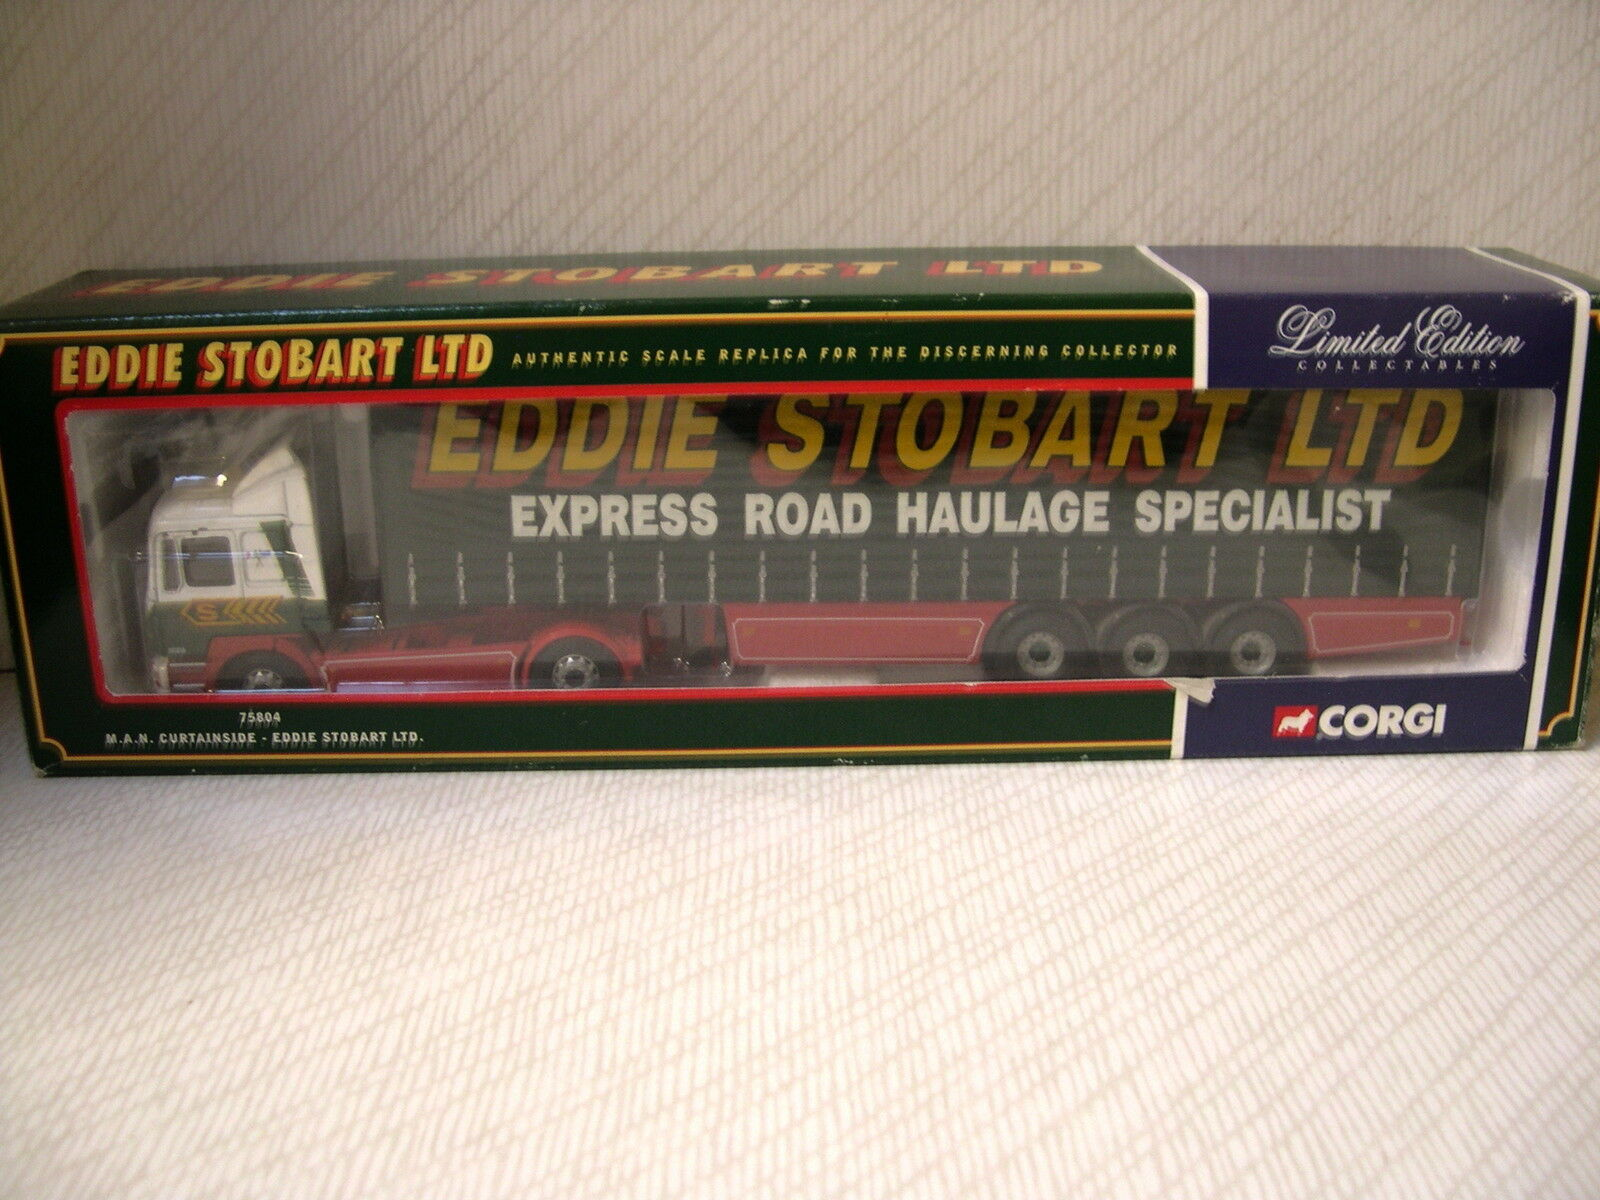 CORGI 75804 M.A.N Curtainside-Eddie Stobart LTD